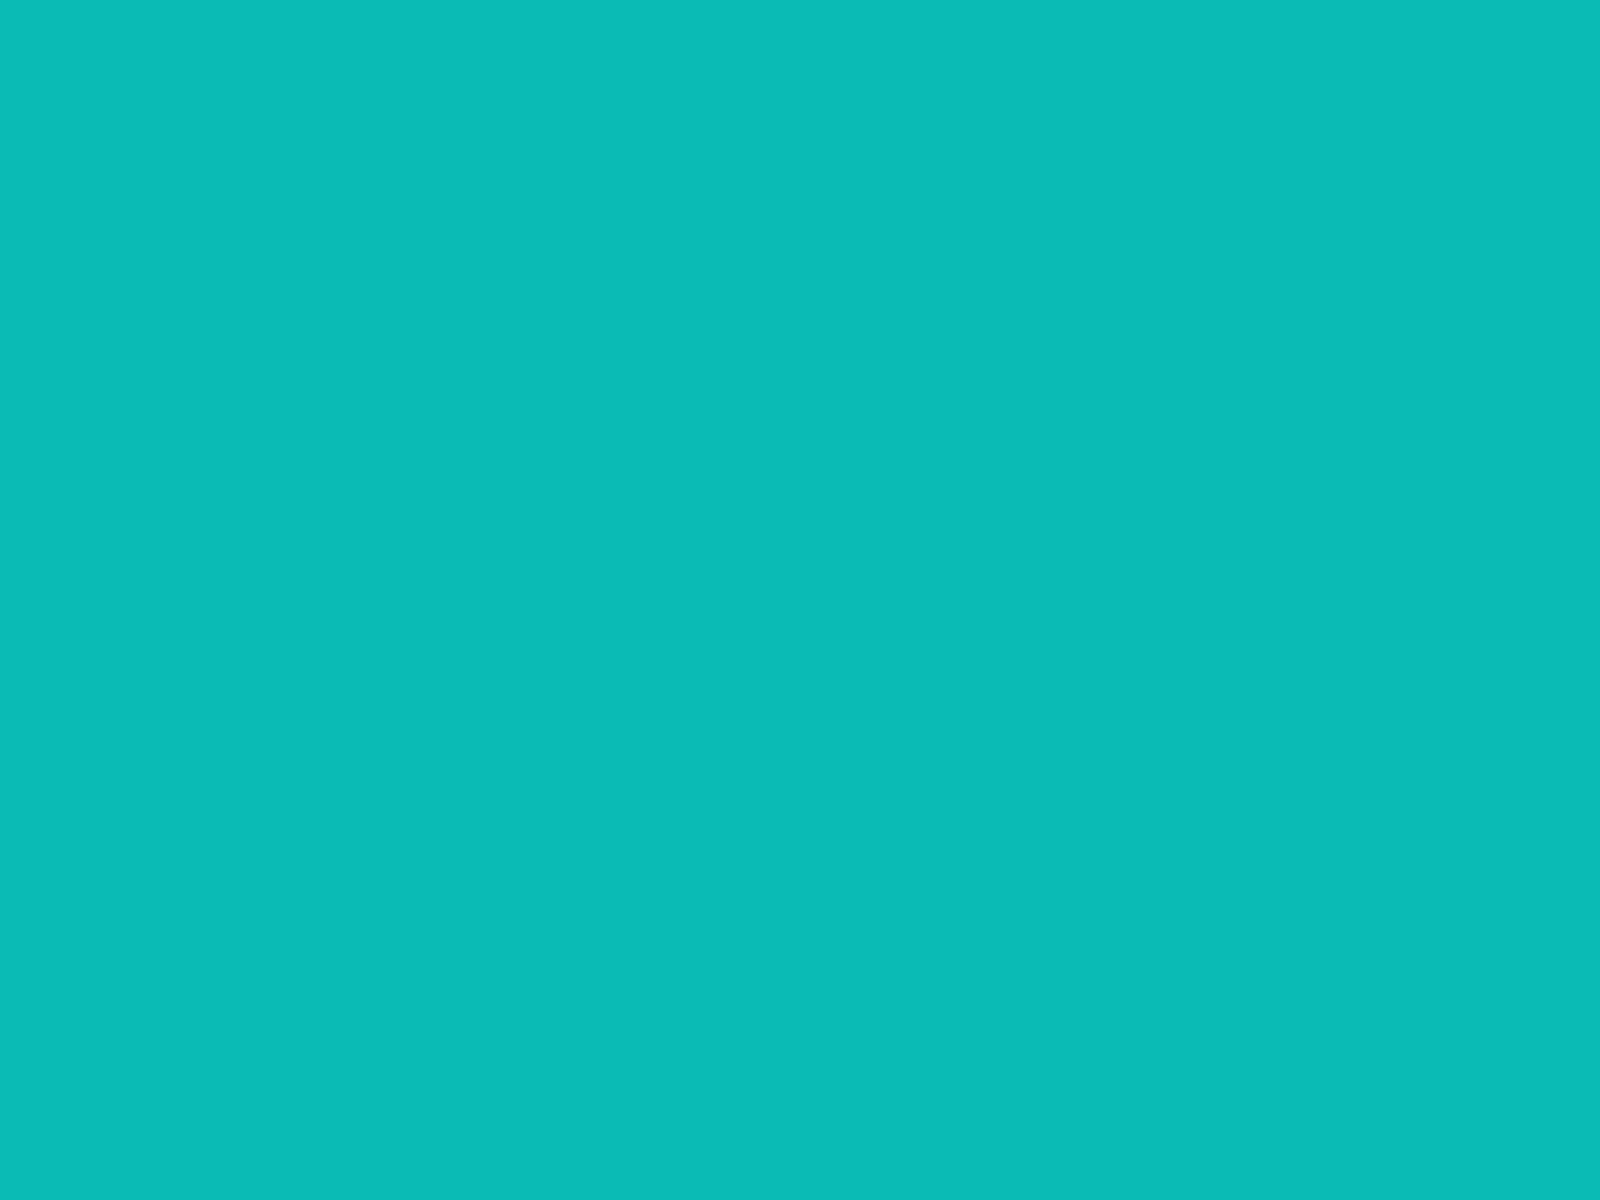 1600x1200 Tiffany Blue Solid Color Background